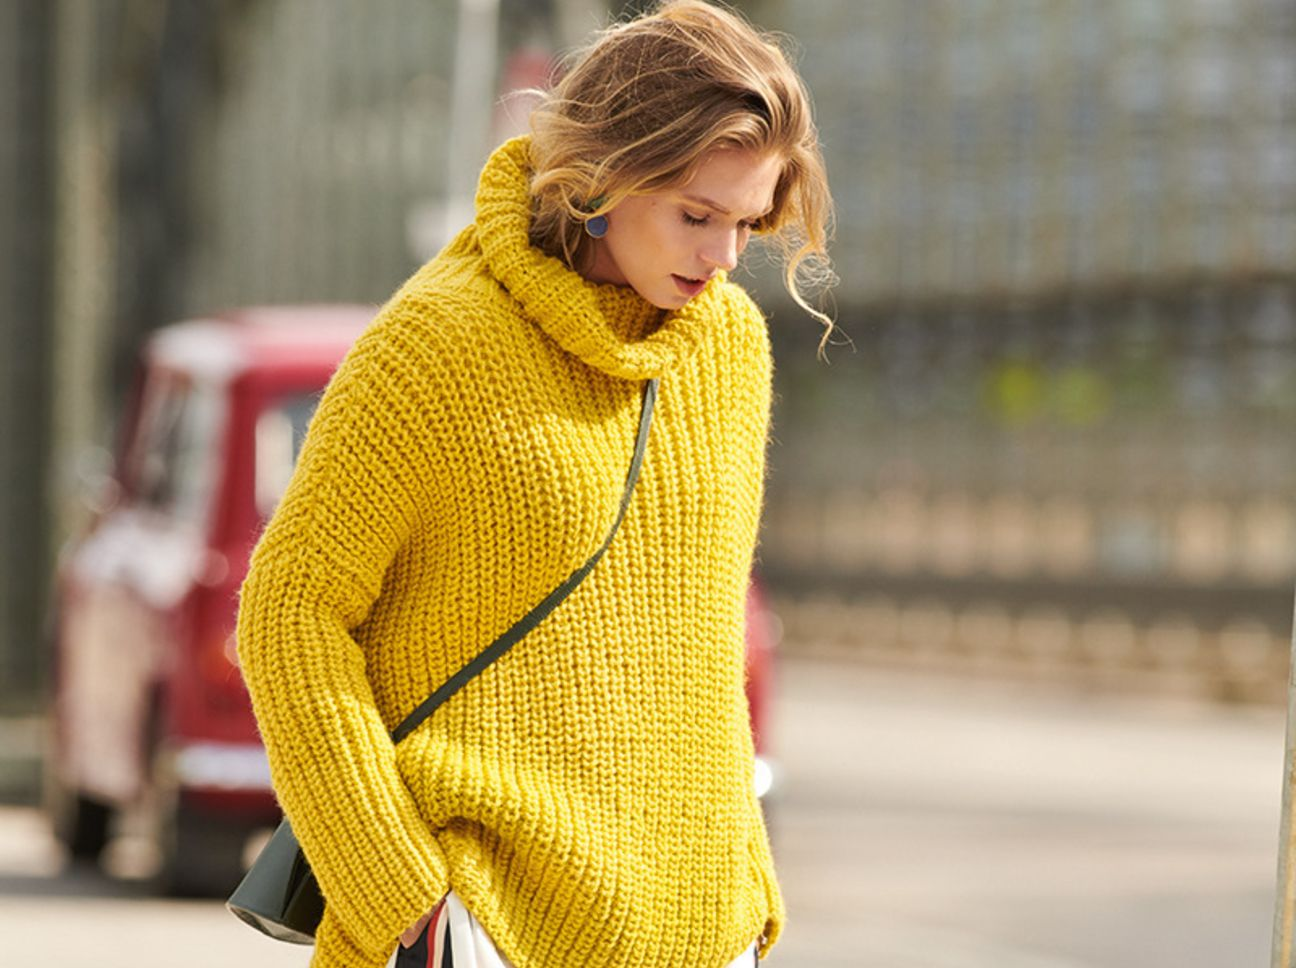 Photo of Strickanleitung: Gelber Rollkragenpullover im Oversized-Look | freundin.de